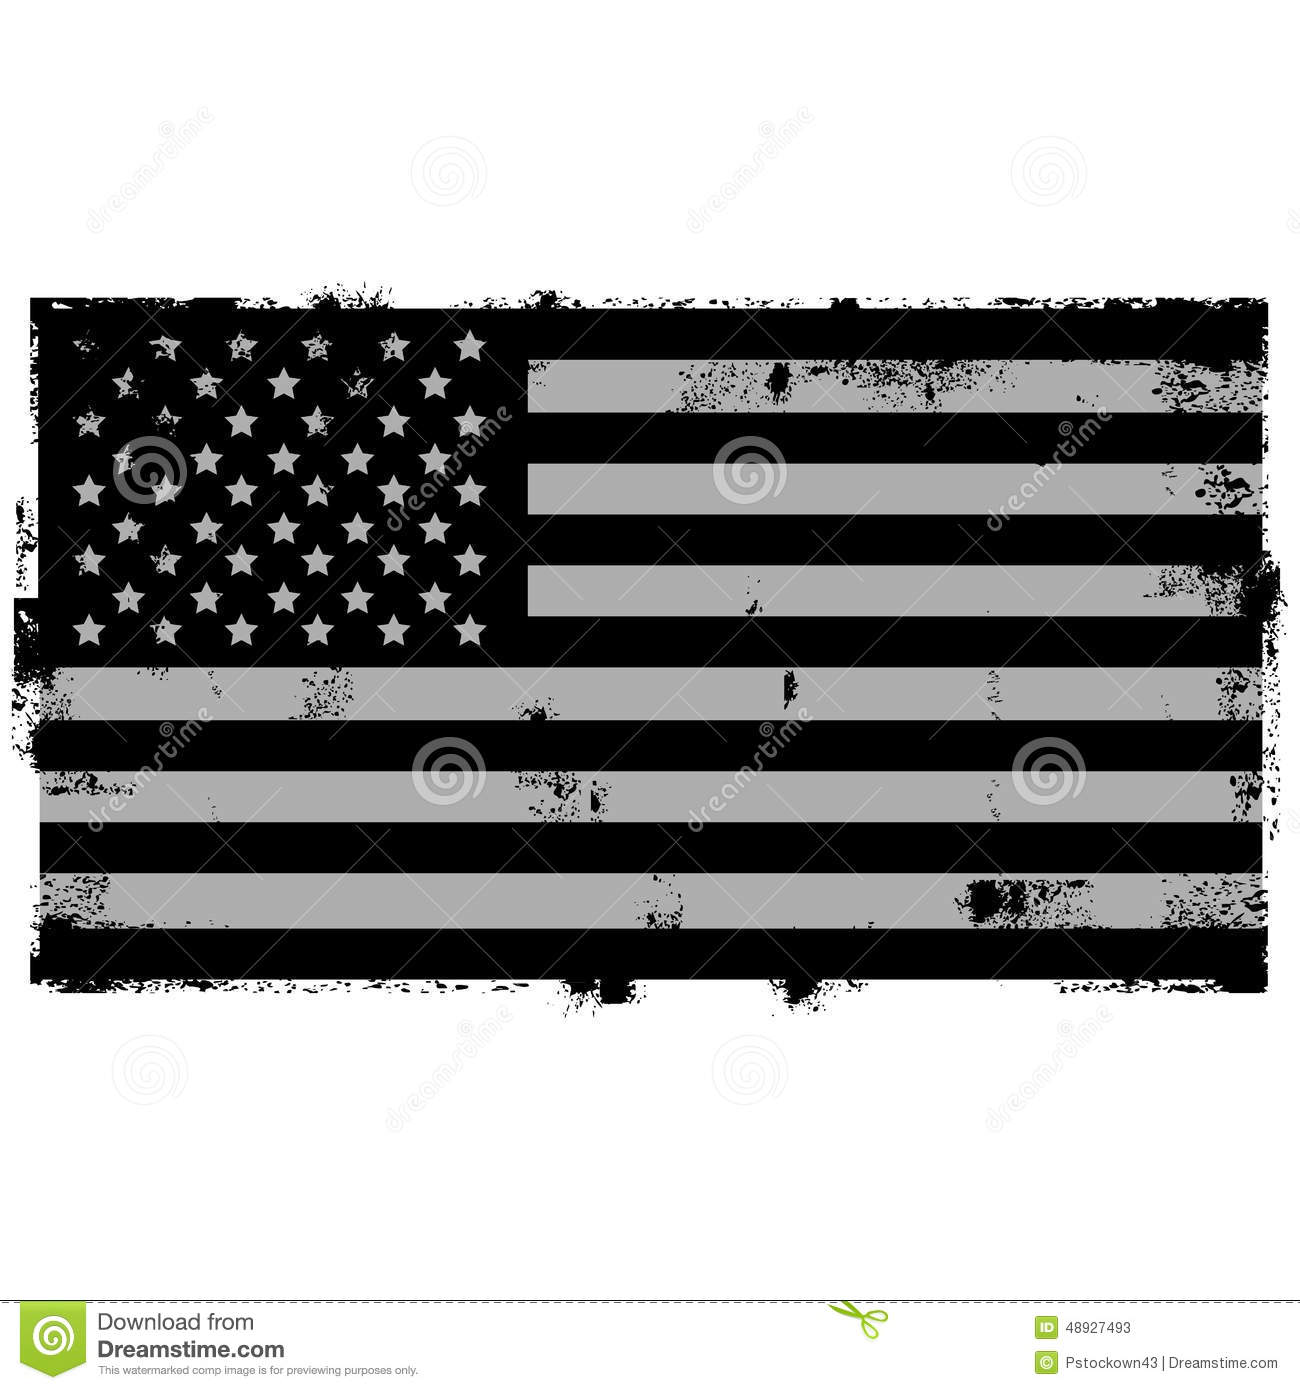 United states distressed flag clipart picture free stock United states distressed flag clipart black and white - ClipartFox picture free stock